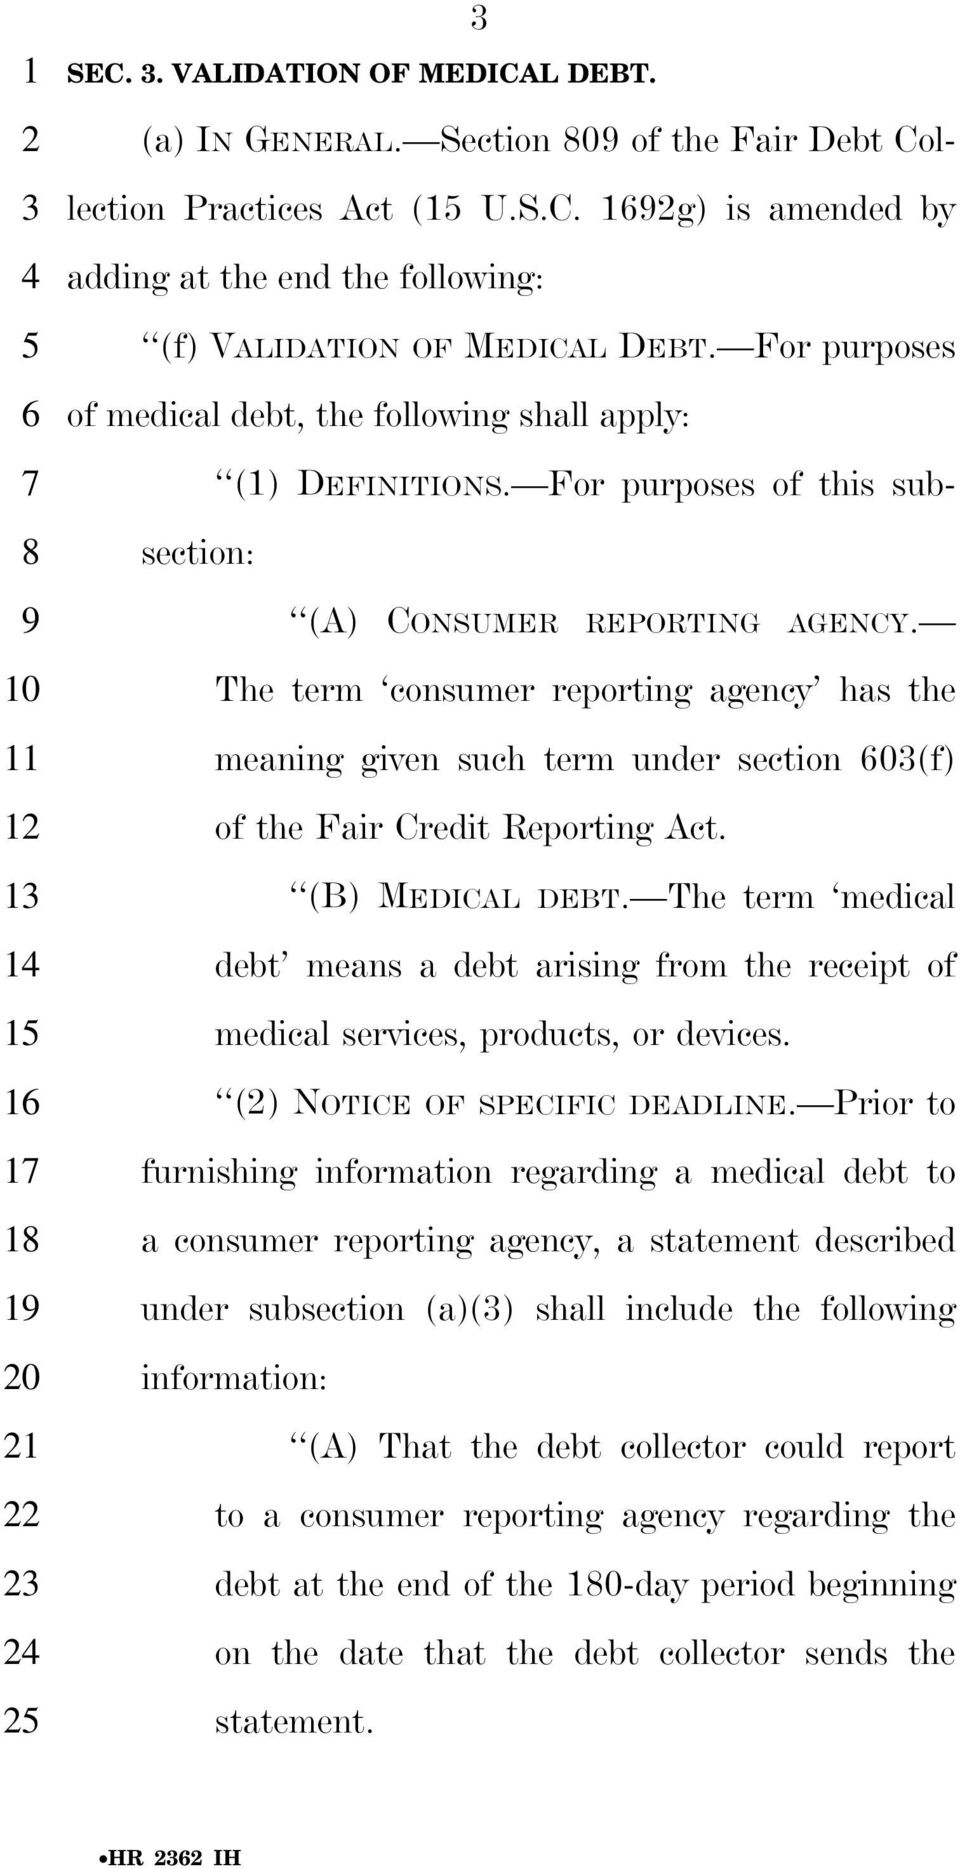 For purposes of medical debt, the following shall apply: () DEFINITIONS. For purposes of this subsection: (A) CONSUMER REPORTING AGENCY.